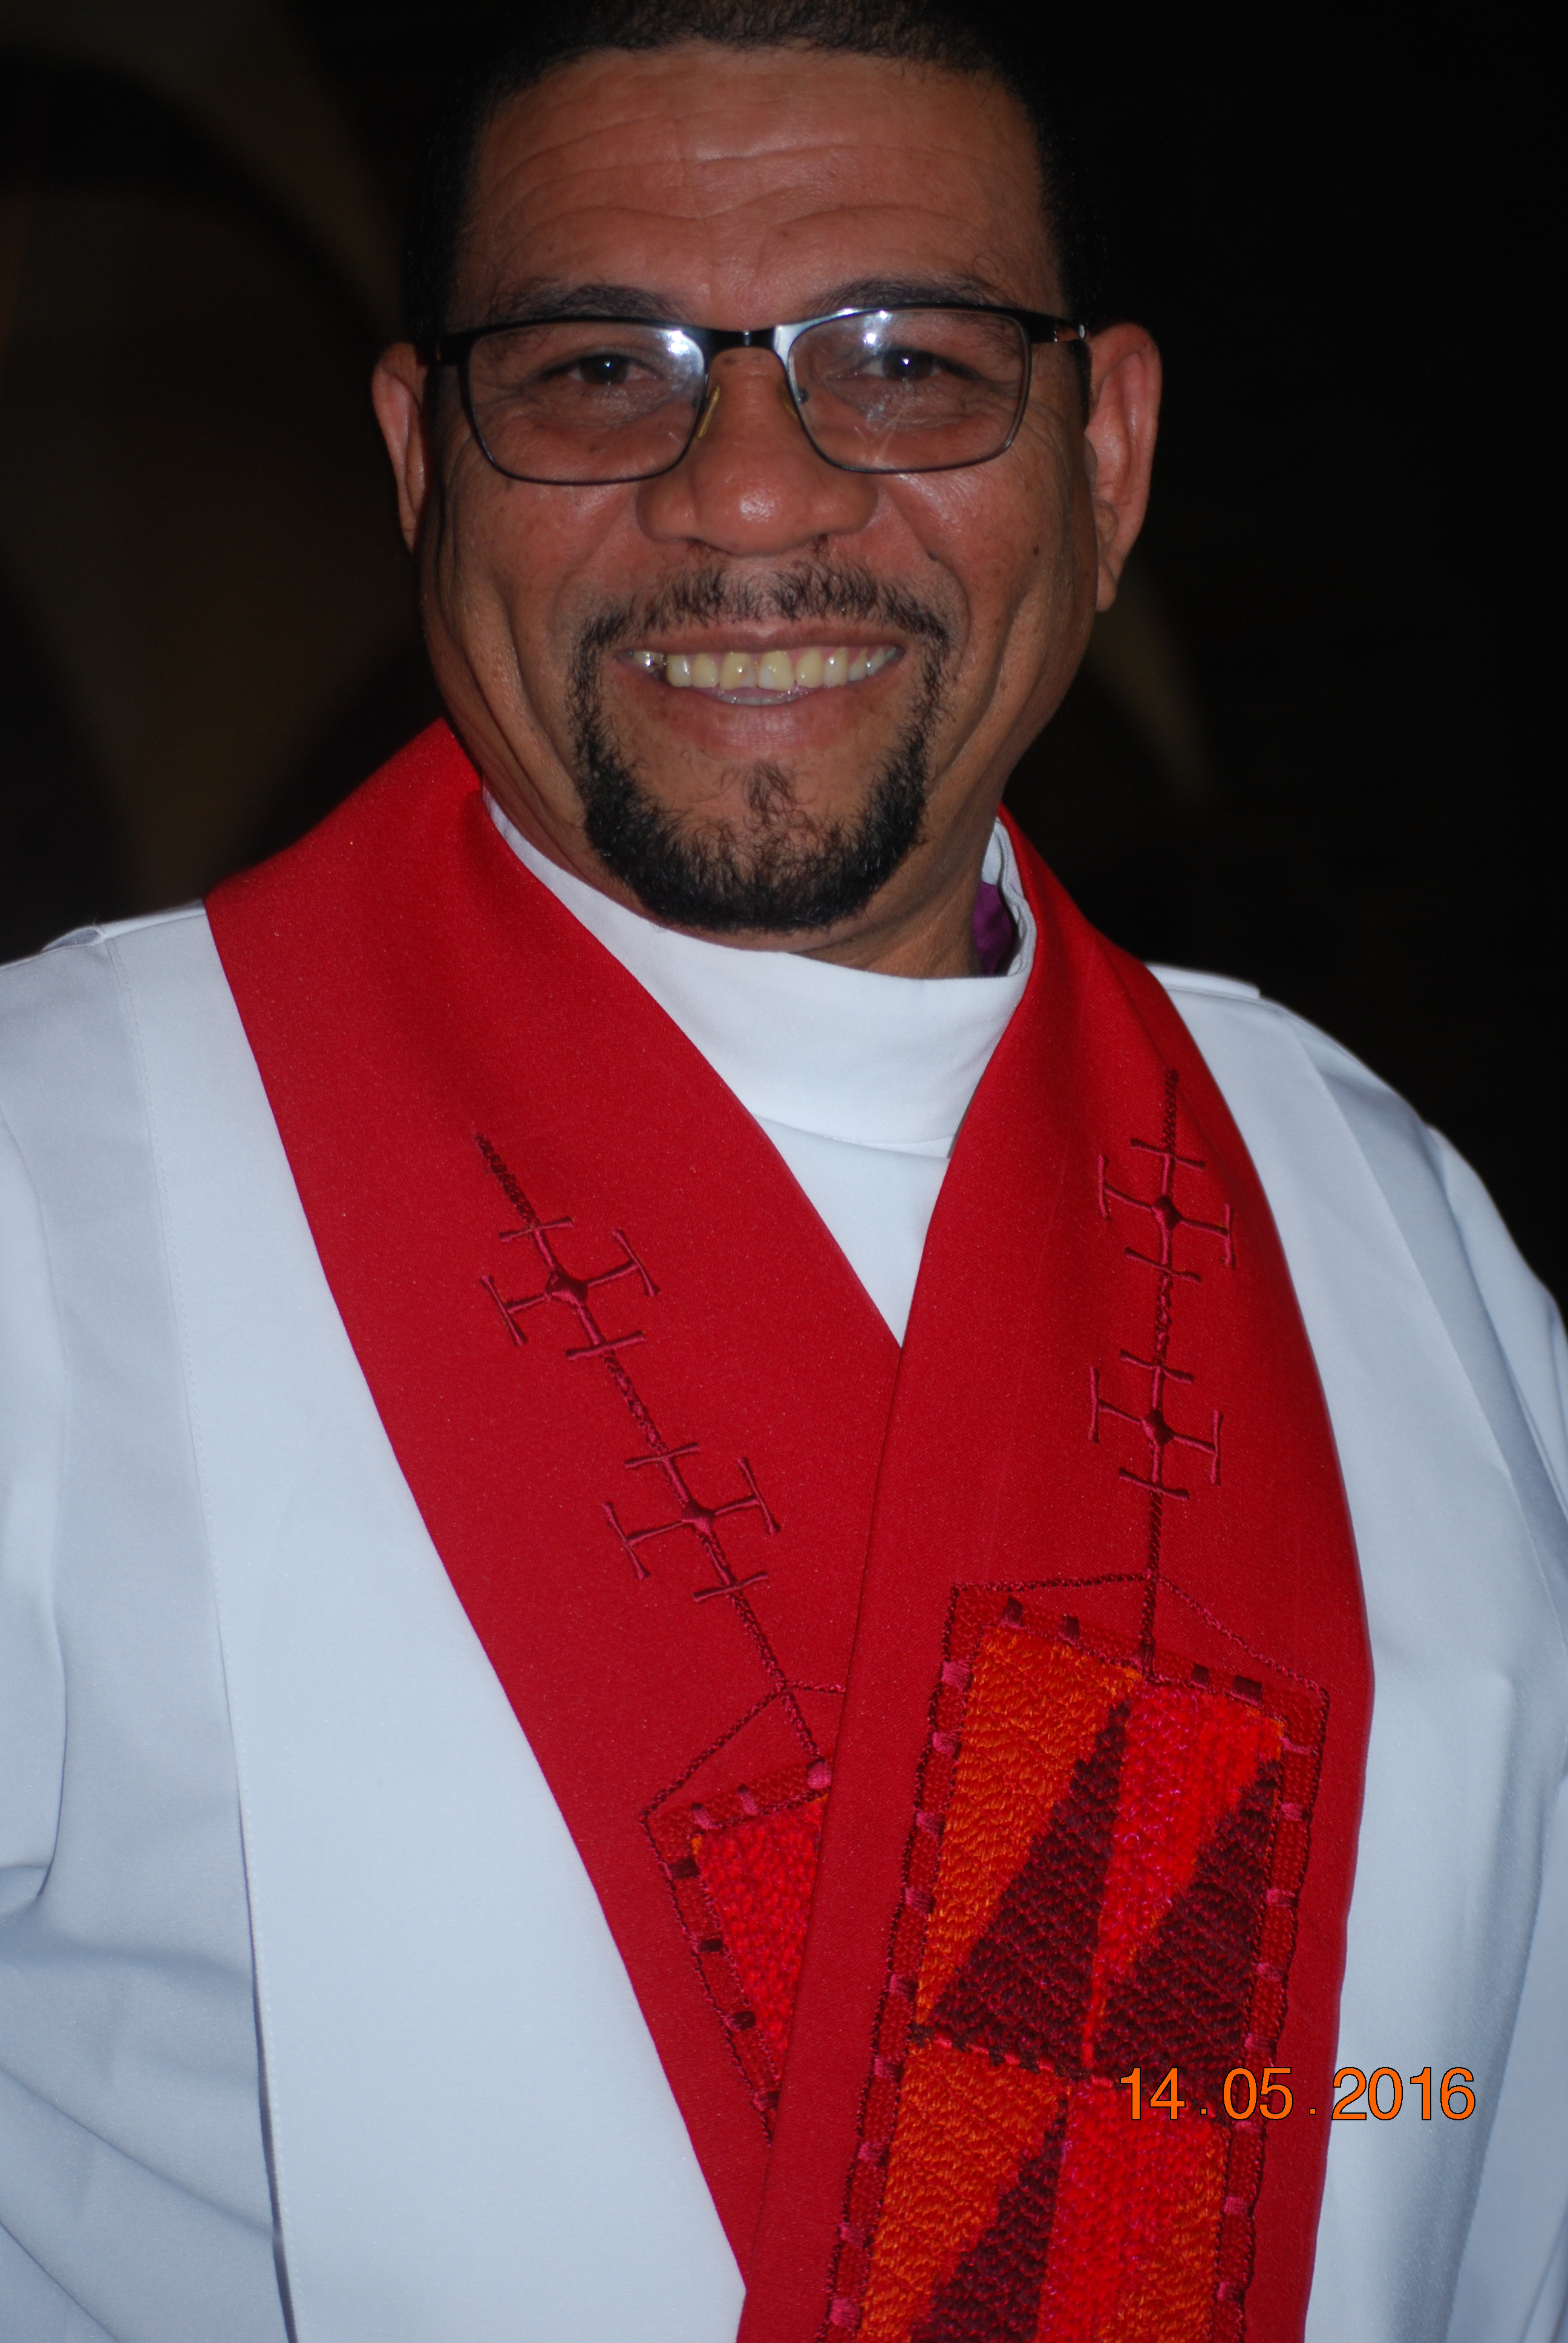 Bishop Allan on the day of his consecration